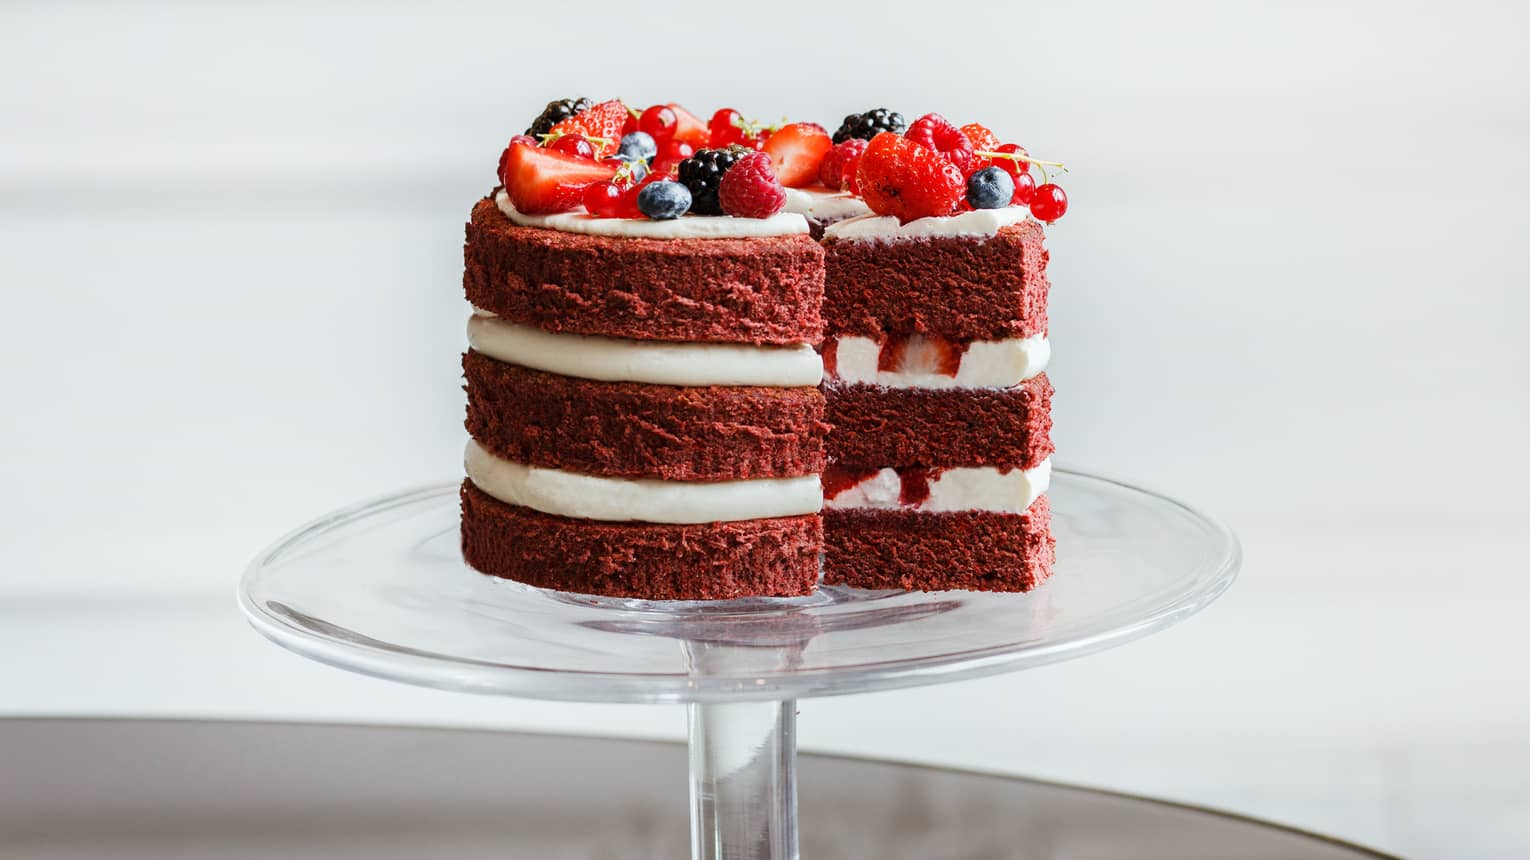 Red velvet layer cake topped with fresh berries on glass cake stand